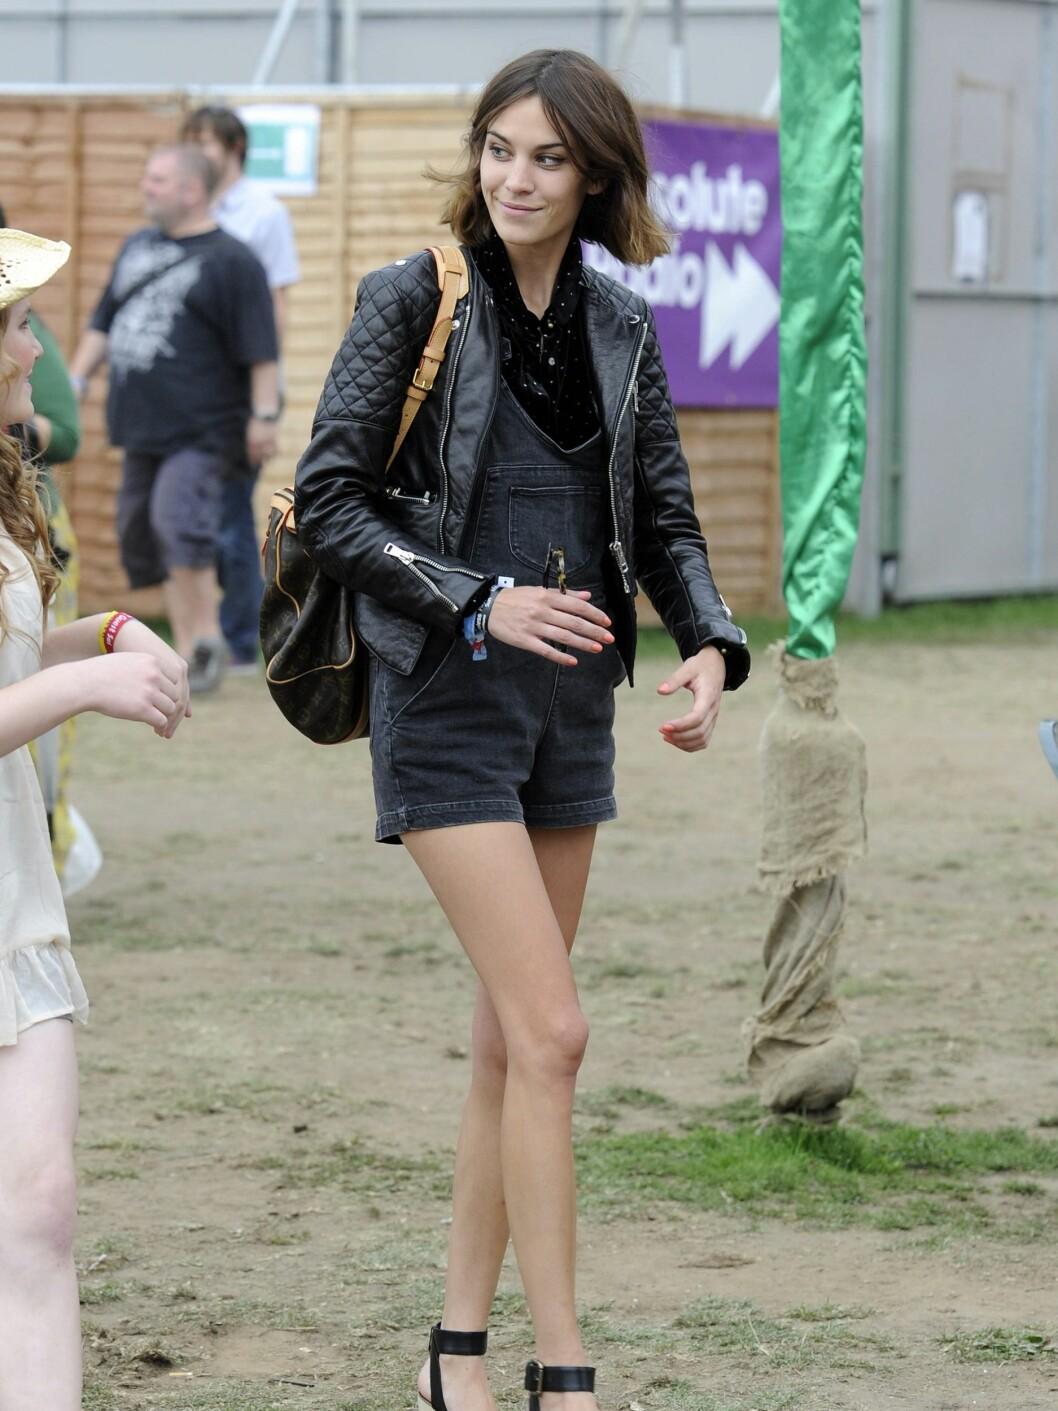 Celebrities pictured attending day three of the Wireless Festival in Hyde Park, London.  Pictured: Alexa Chung  Ref: SPL294911  030711   Picture by: Splash News  Splash News and Pictures Los Angeles:310-821-2666 New York:212-619-2666 London:870-934-2666 photodesk@splashnews.com  *** Local Caption *** NO UNITED KINGDOM Foto: All Over Press